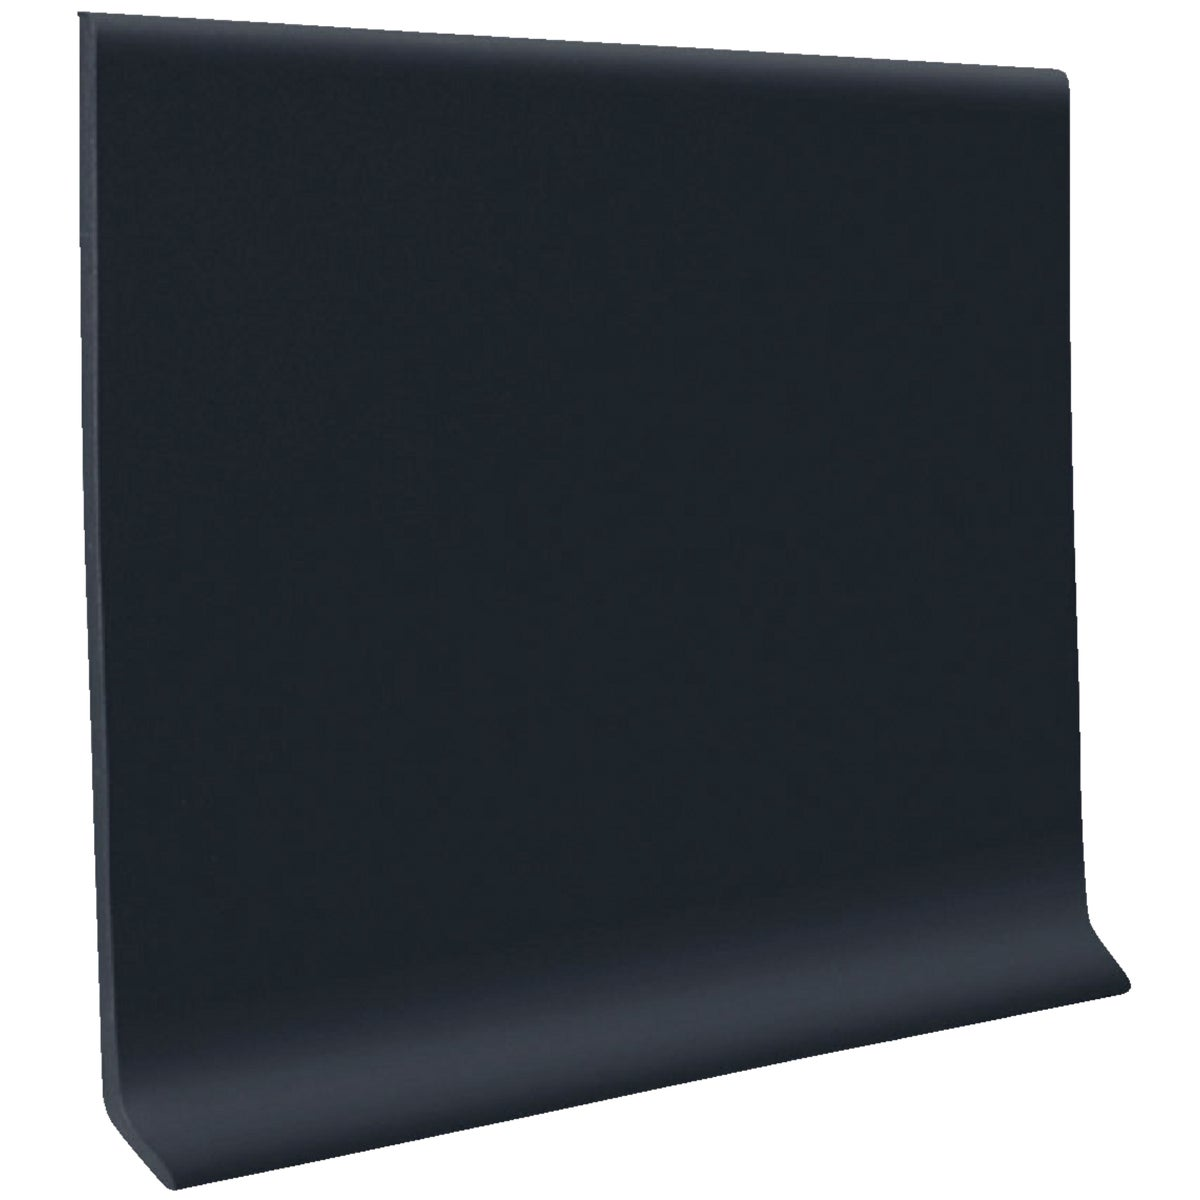 "2-1/2""X4' BLK WALL BASE - H1625C51P100 by Roppe Corporation"